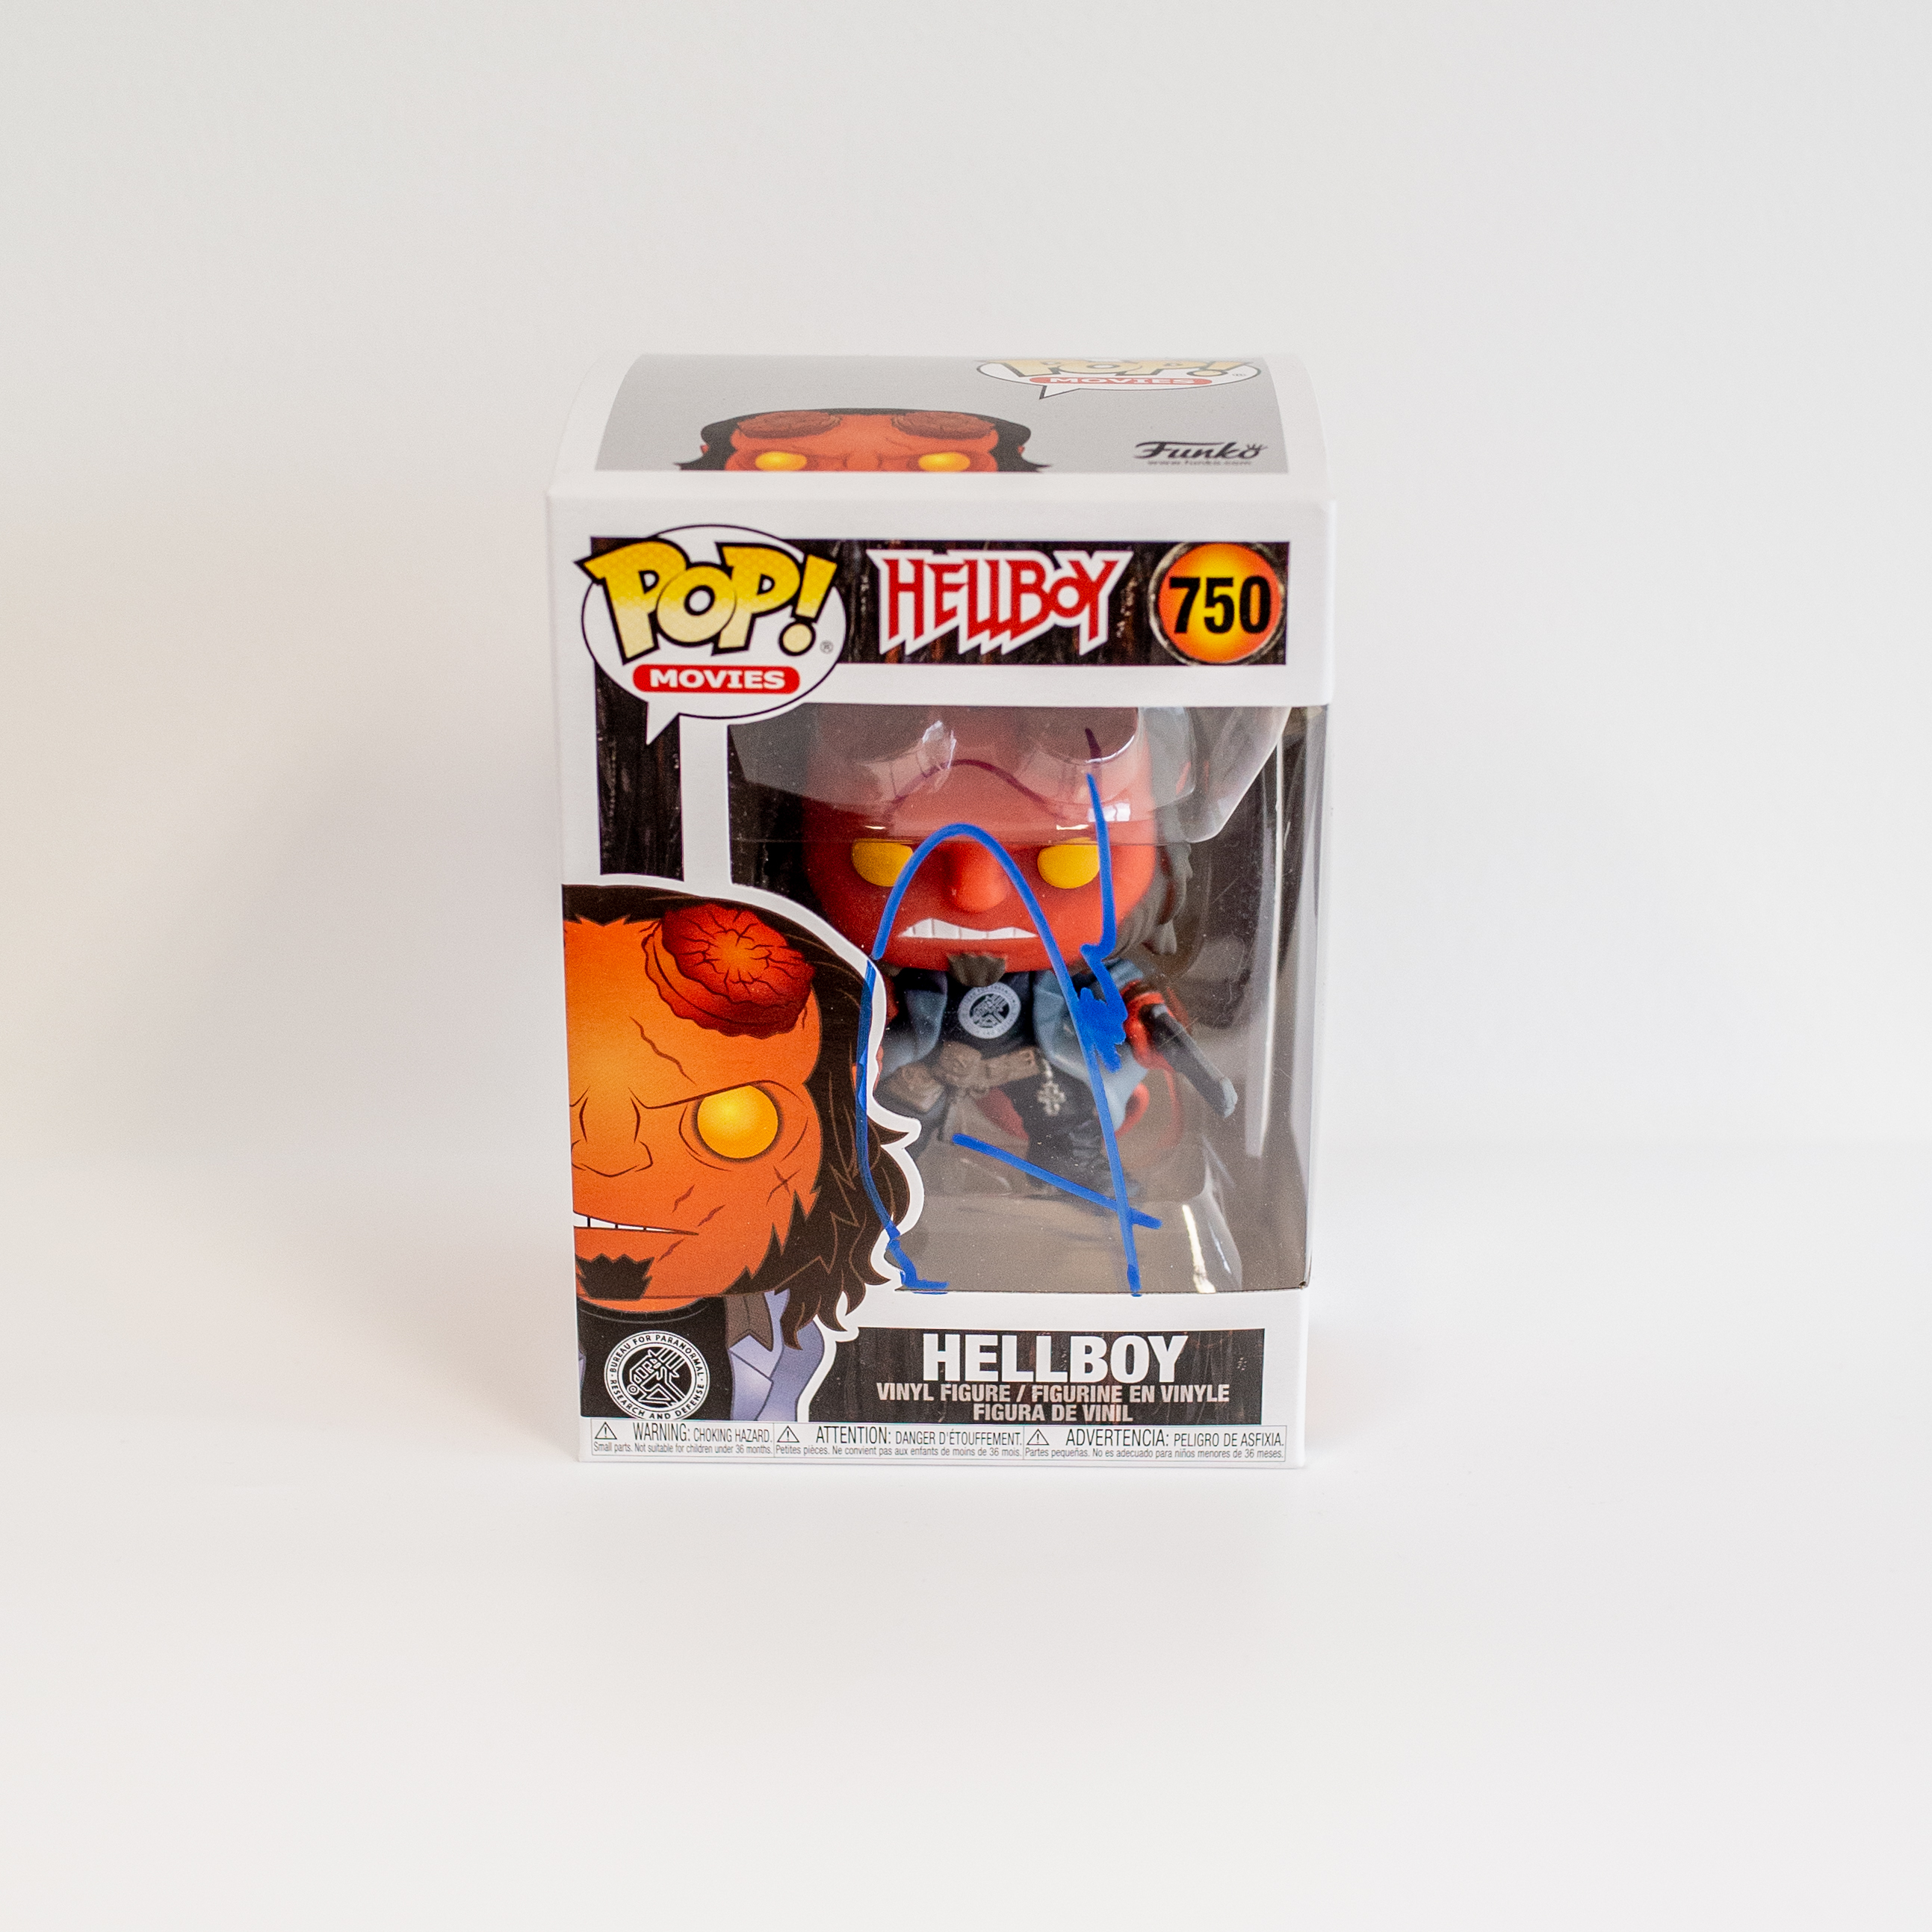 David Harbour Original Autogramm auf Funko POP! Hellboy - Hellboy   (Blaue Signatur)